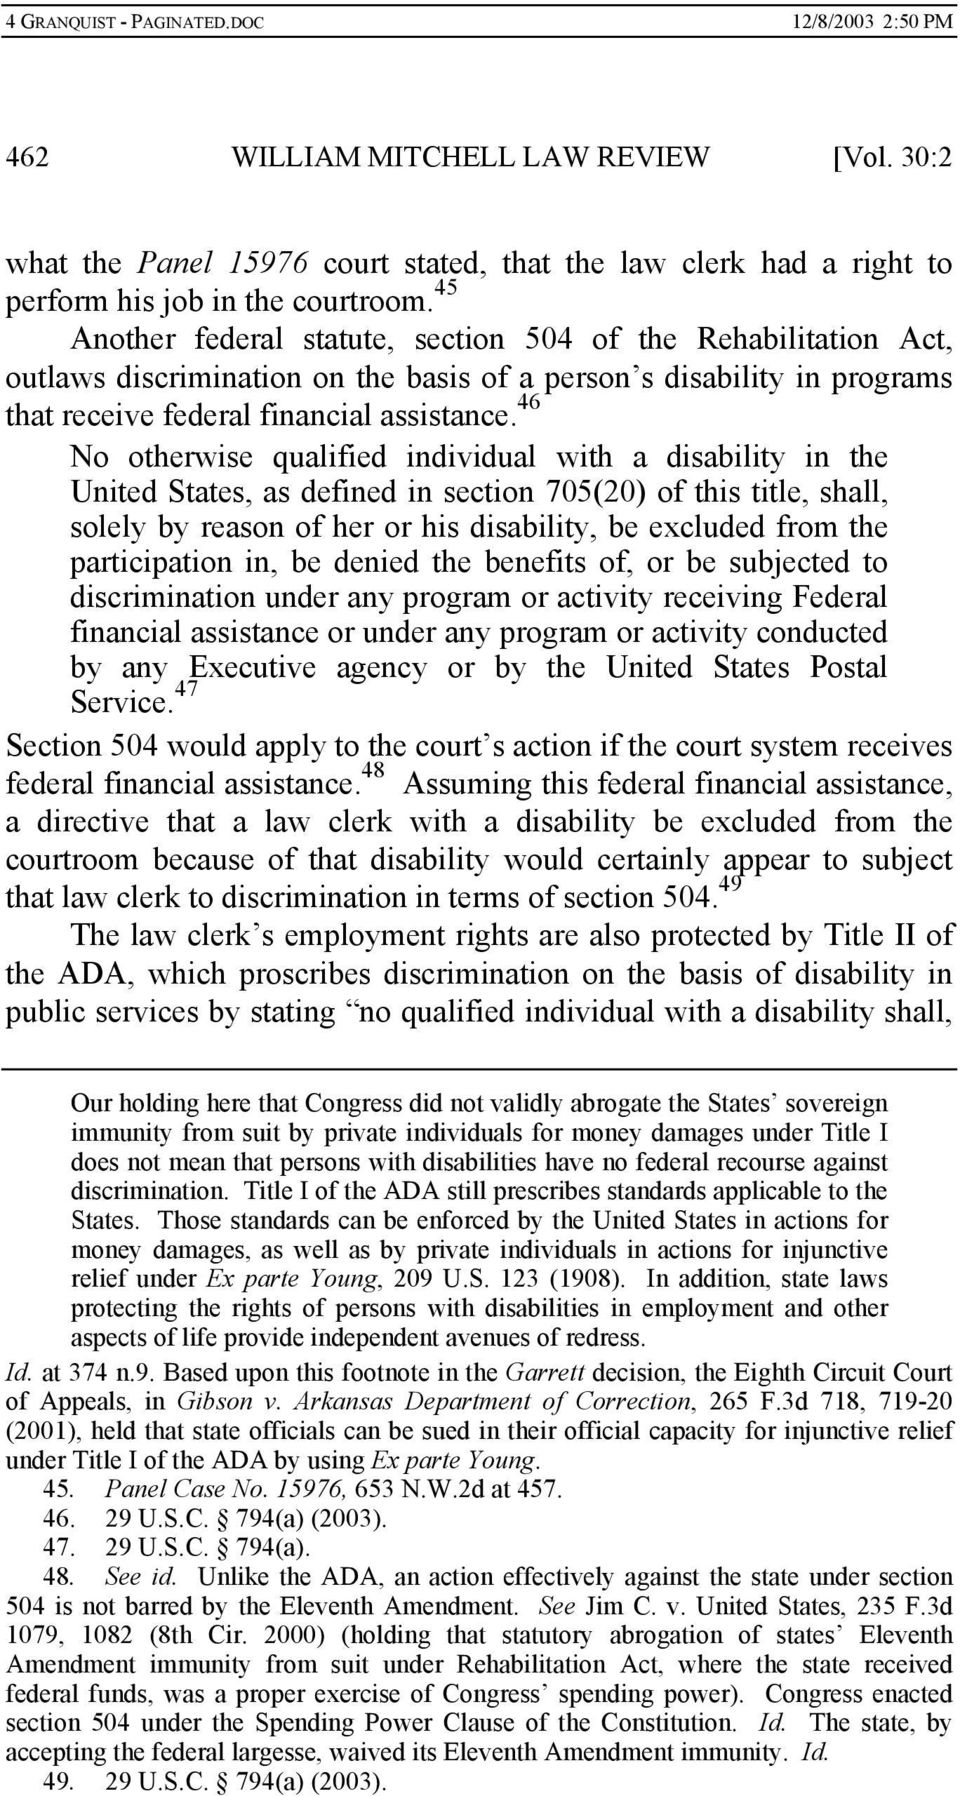 46 No otherwise qualified individual with a disability in the United States, as defined in section 705(20) of this title, shall, solely by reason of her or his disability, be excluded from the